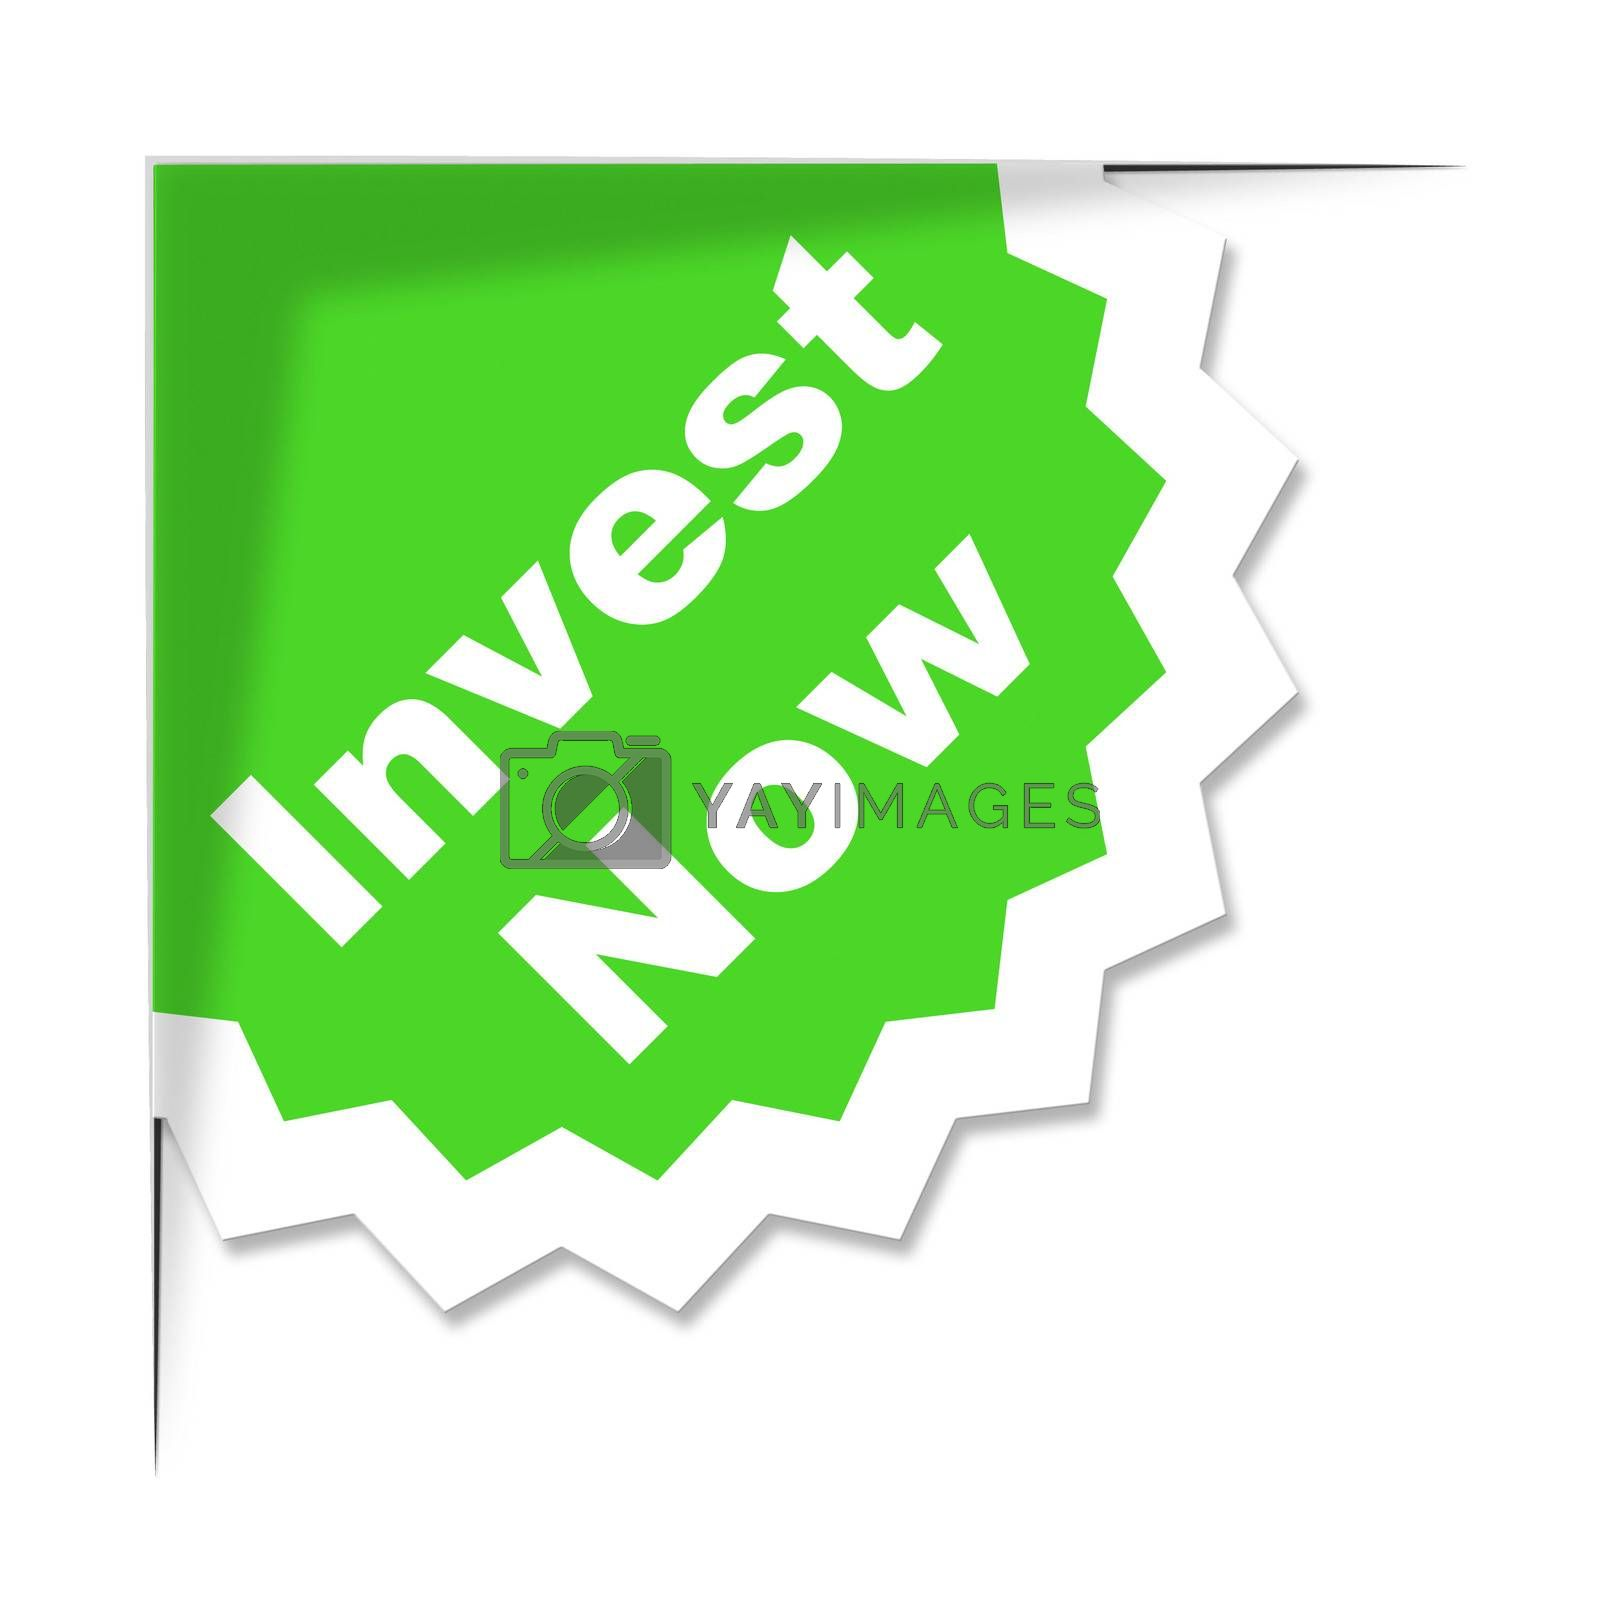 Invest Now Label Means Return On Investment And Growth by stuartmiles